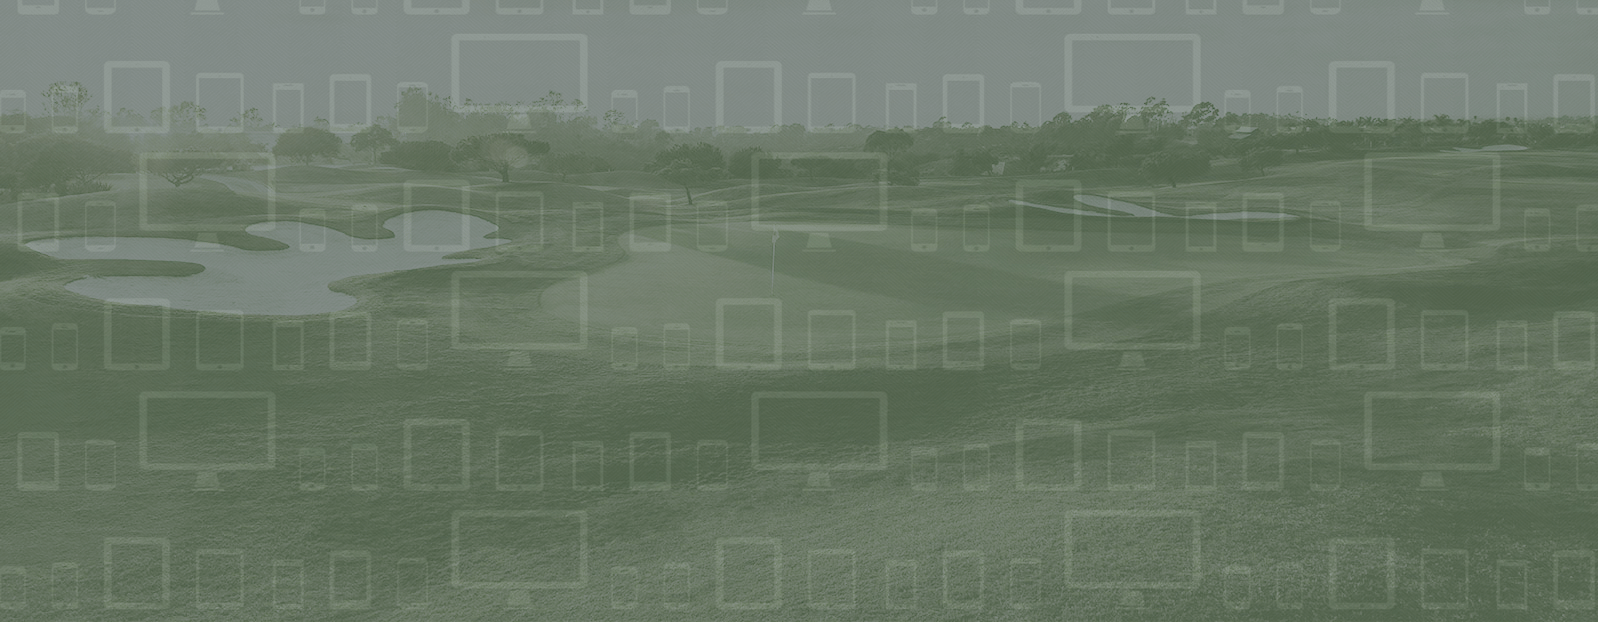 ADA Compliance for Golf Course Websites